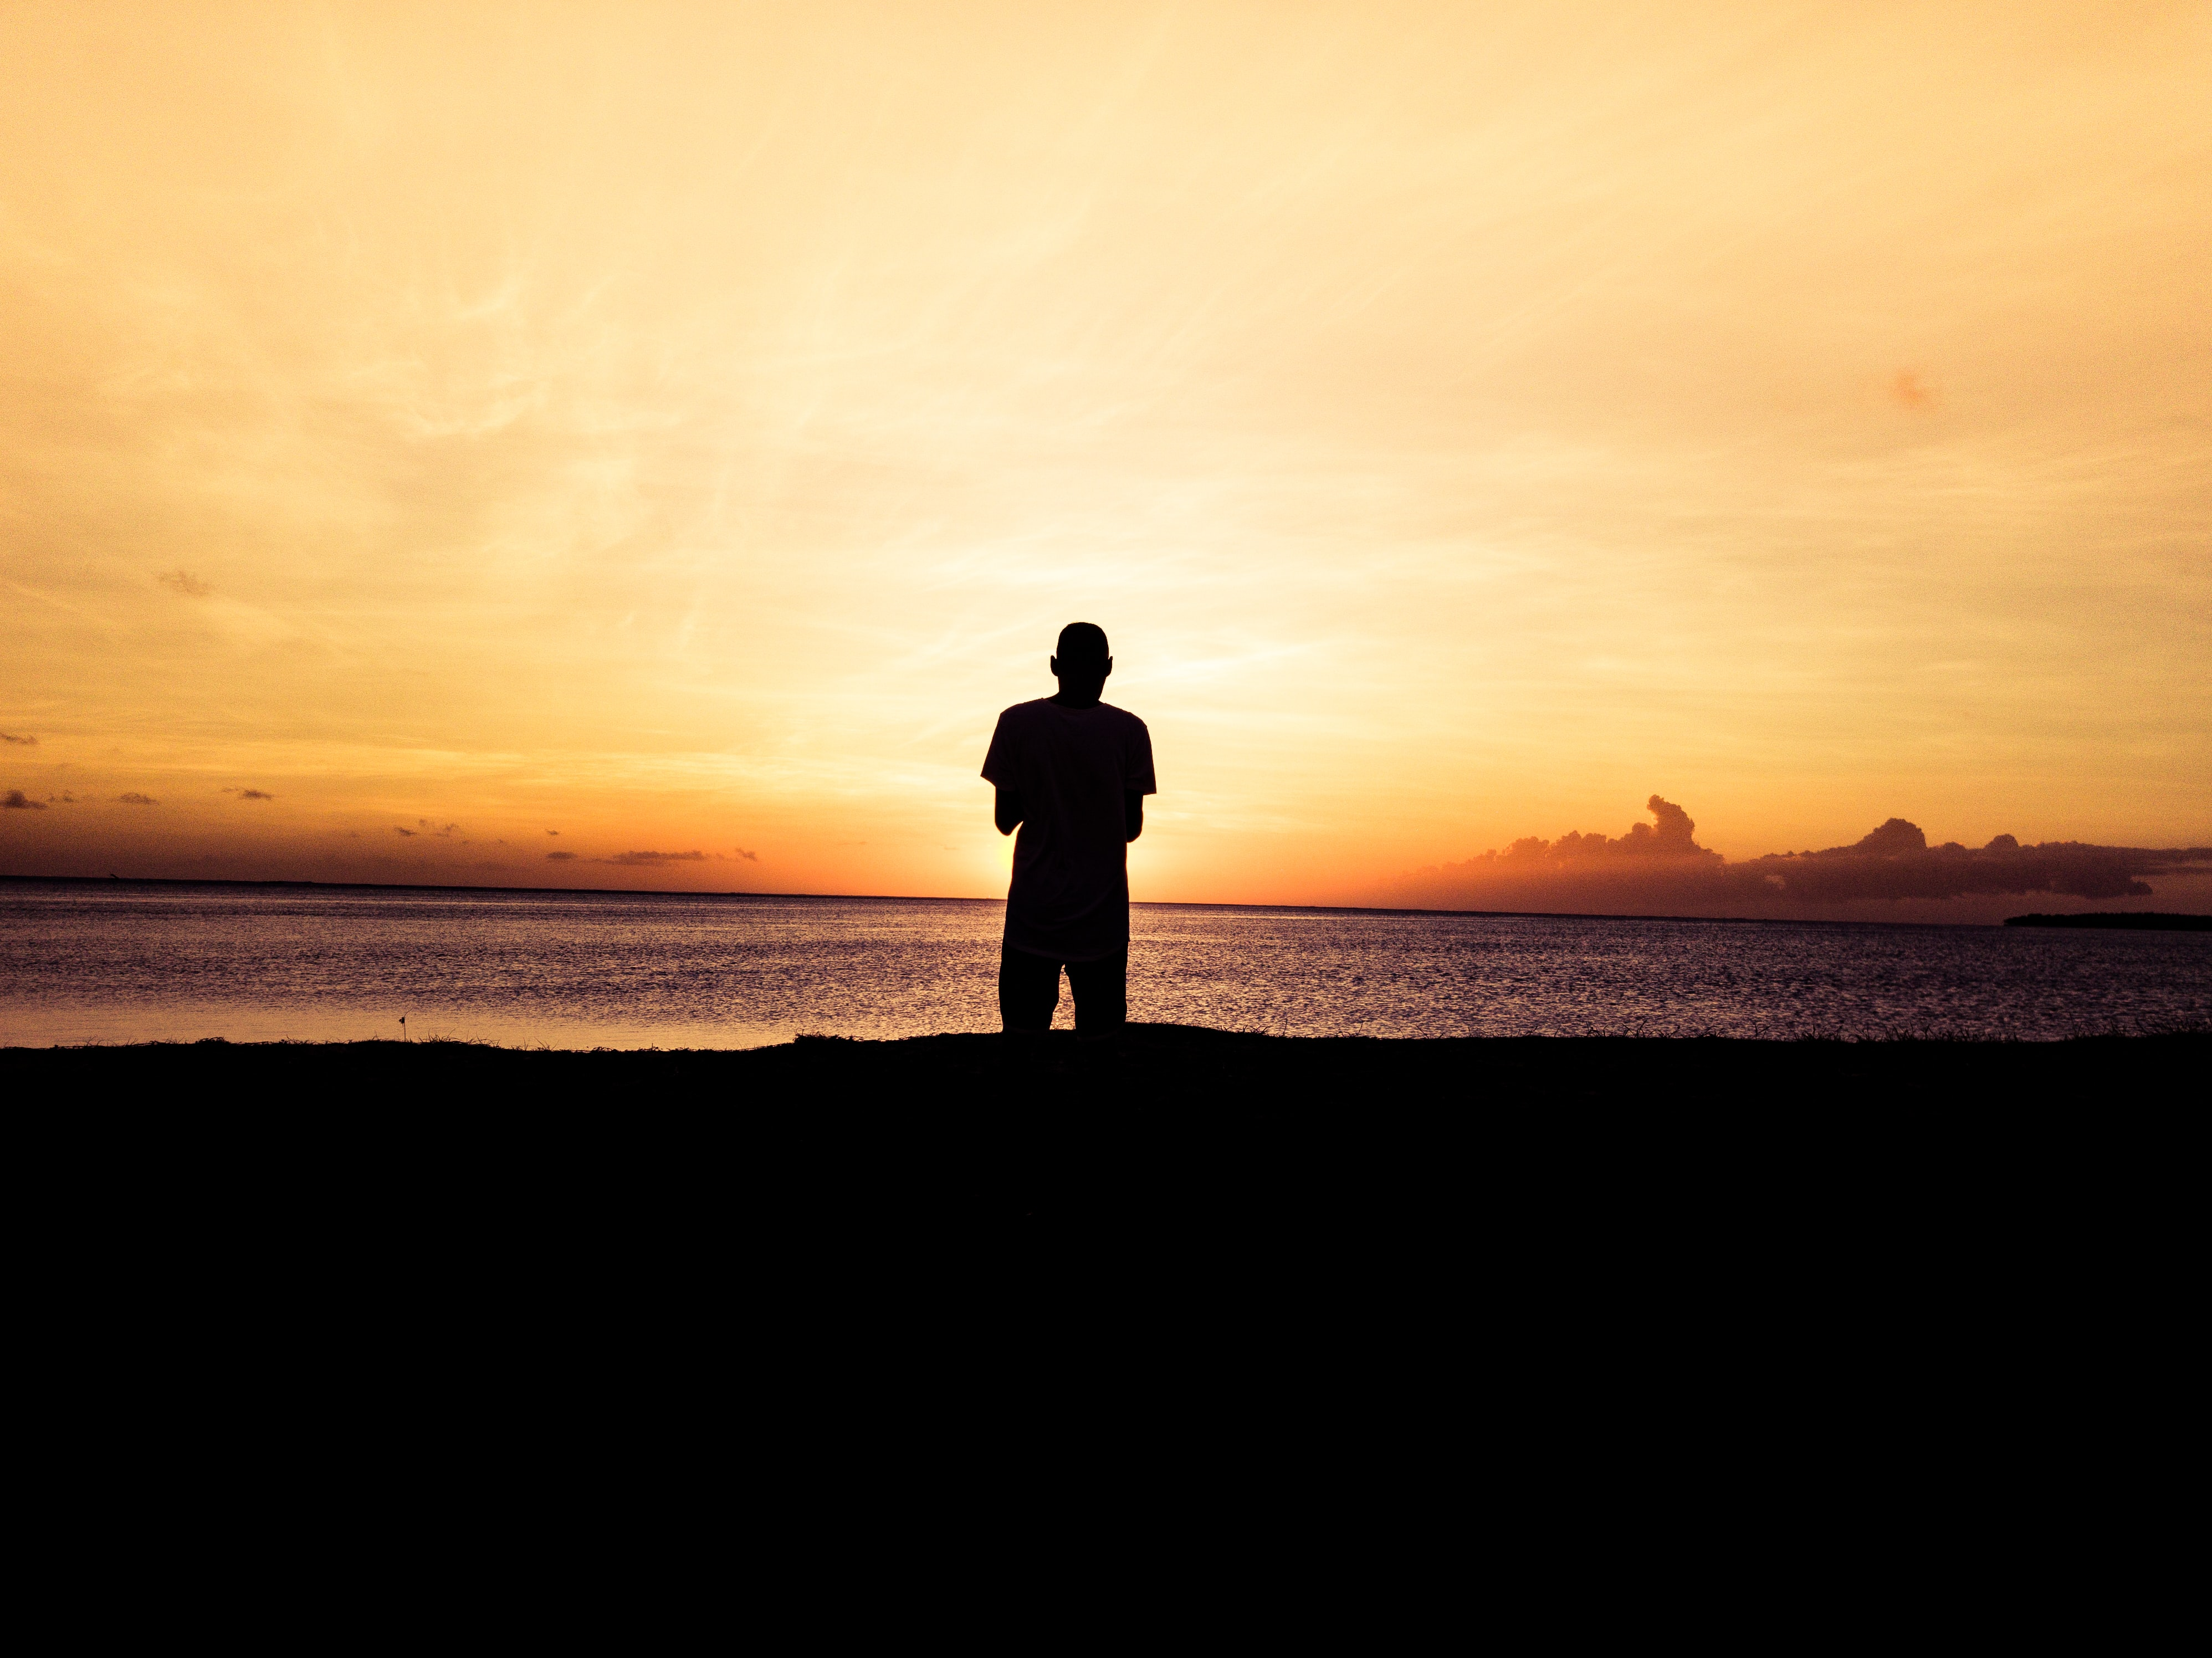 silhouette photo of person standing in front of body of water during sunset